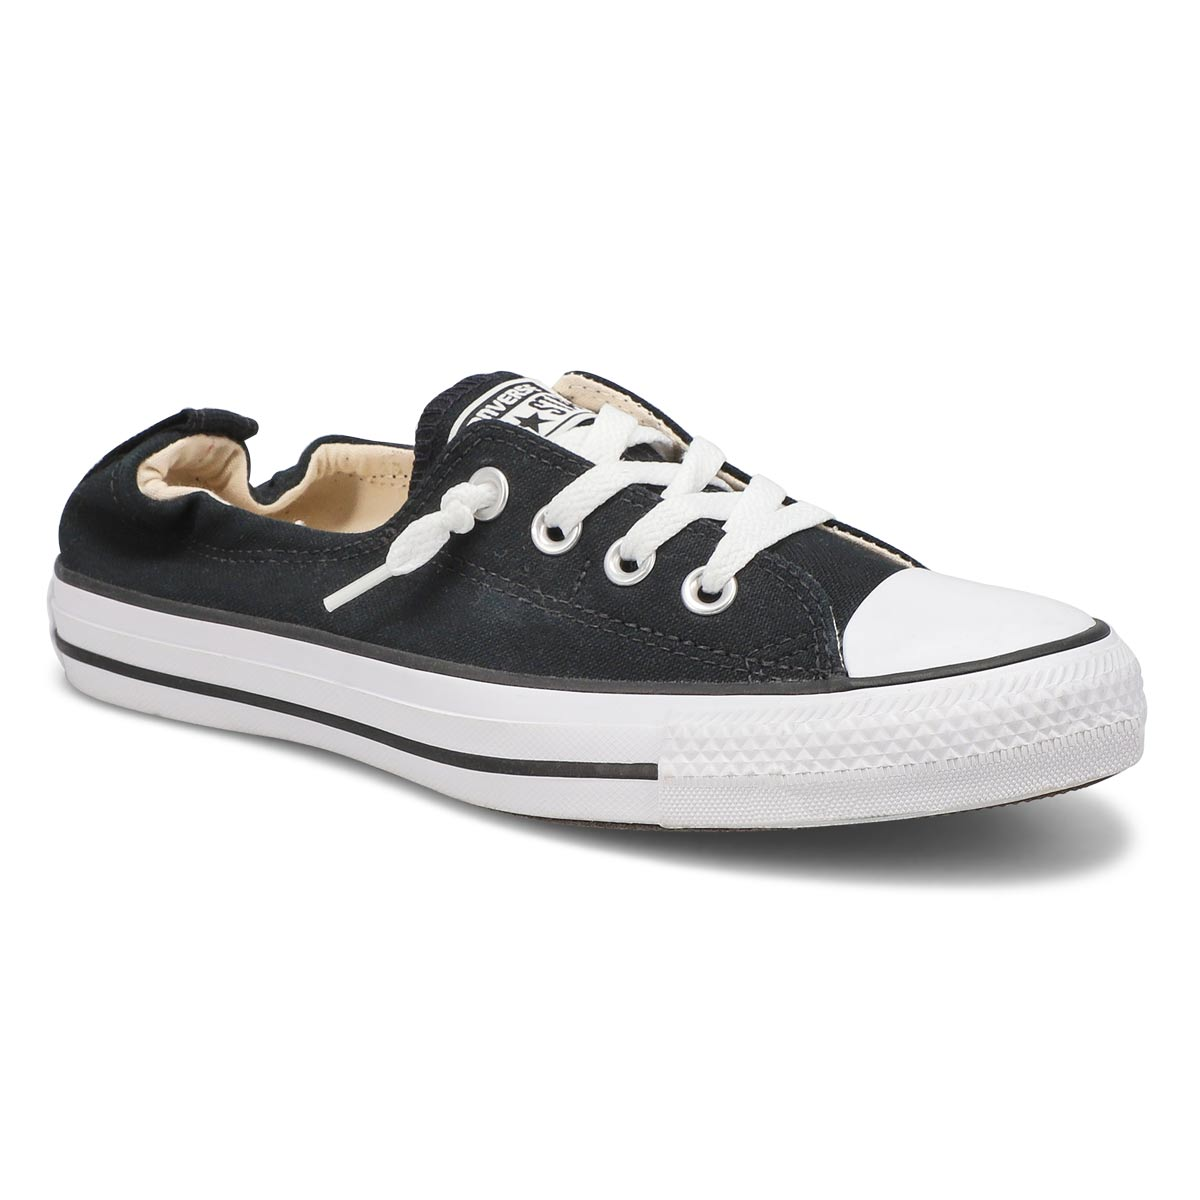 Lds CT A/S Shoreline black sneaker